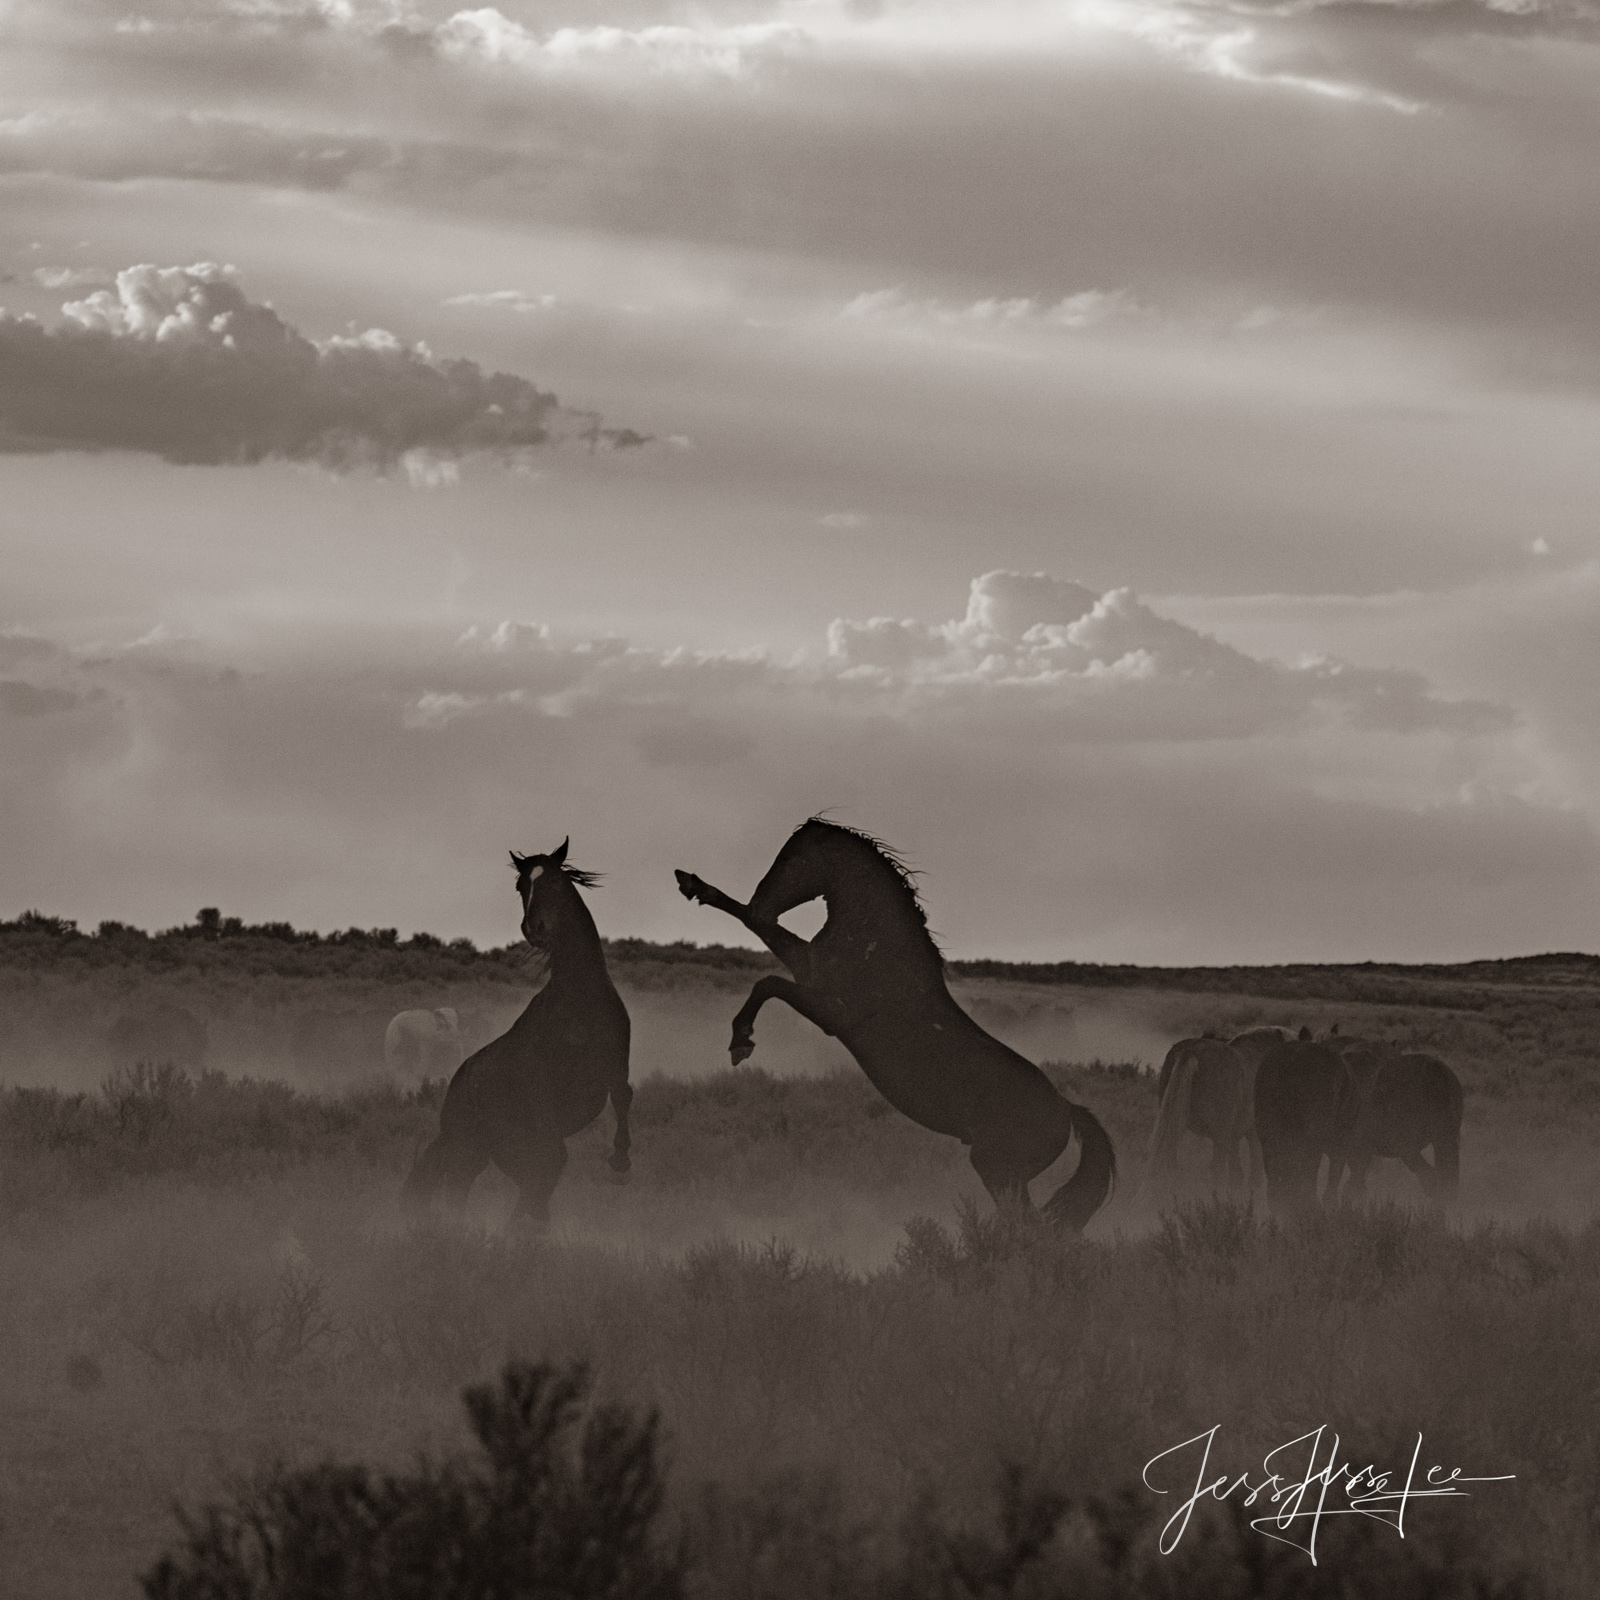 Fine Art Print of fighting Wyoming Wild Horses. Limited Edition of 250 Luxurious Prints.  Choose the style, size, and medium...